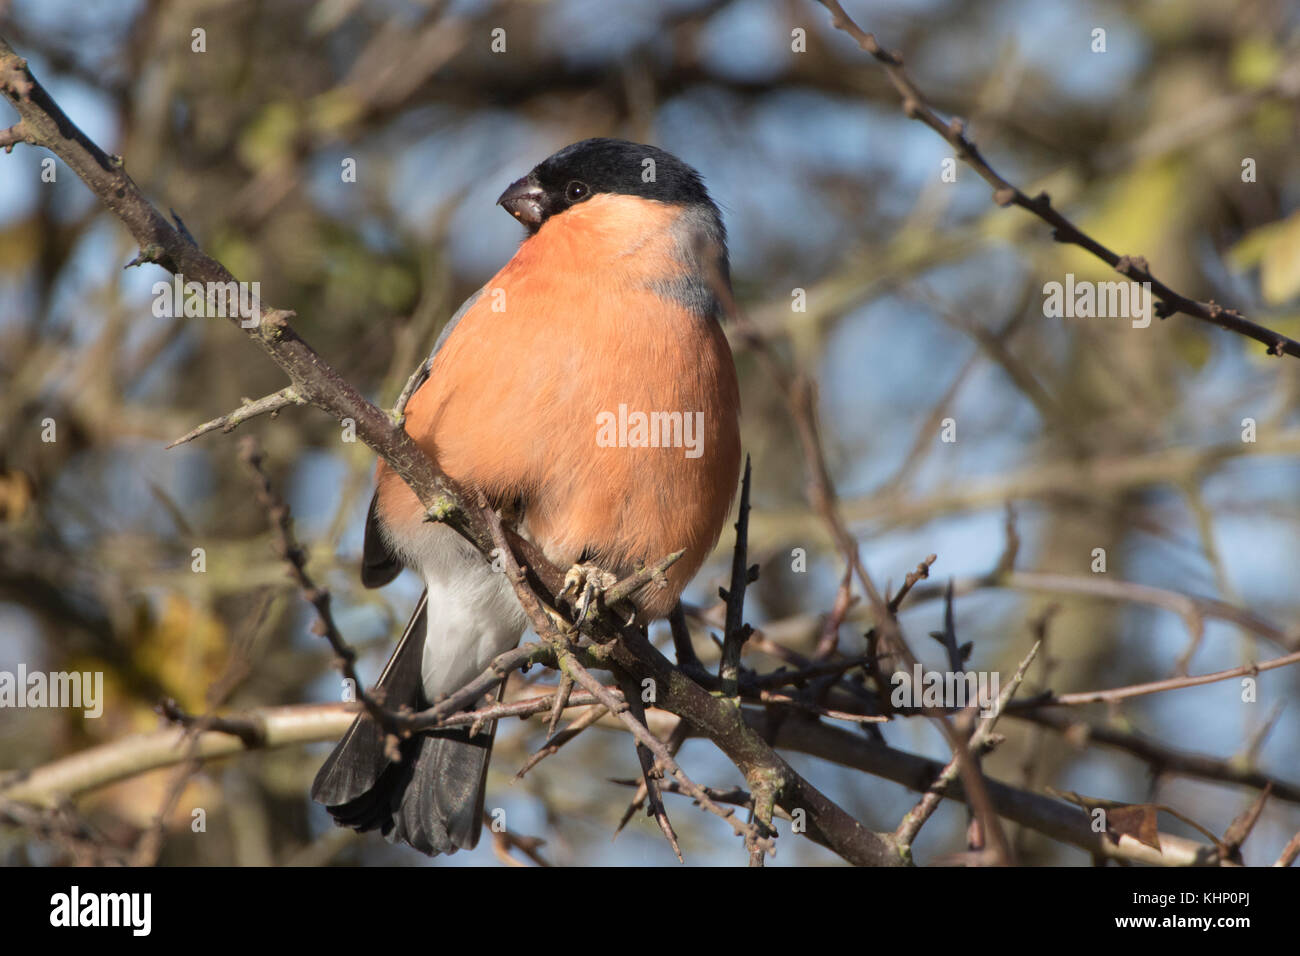 Male Bullfinch Pyrrhula pyrrhula in autumn in hawthorn tree red berries - Stock Image